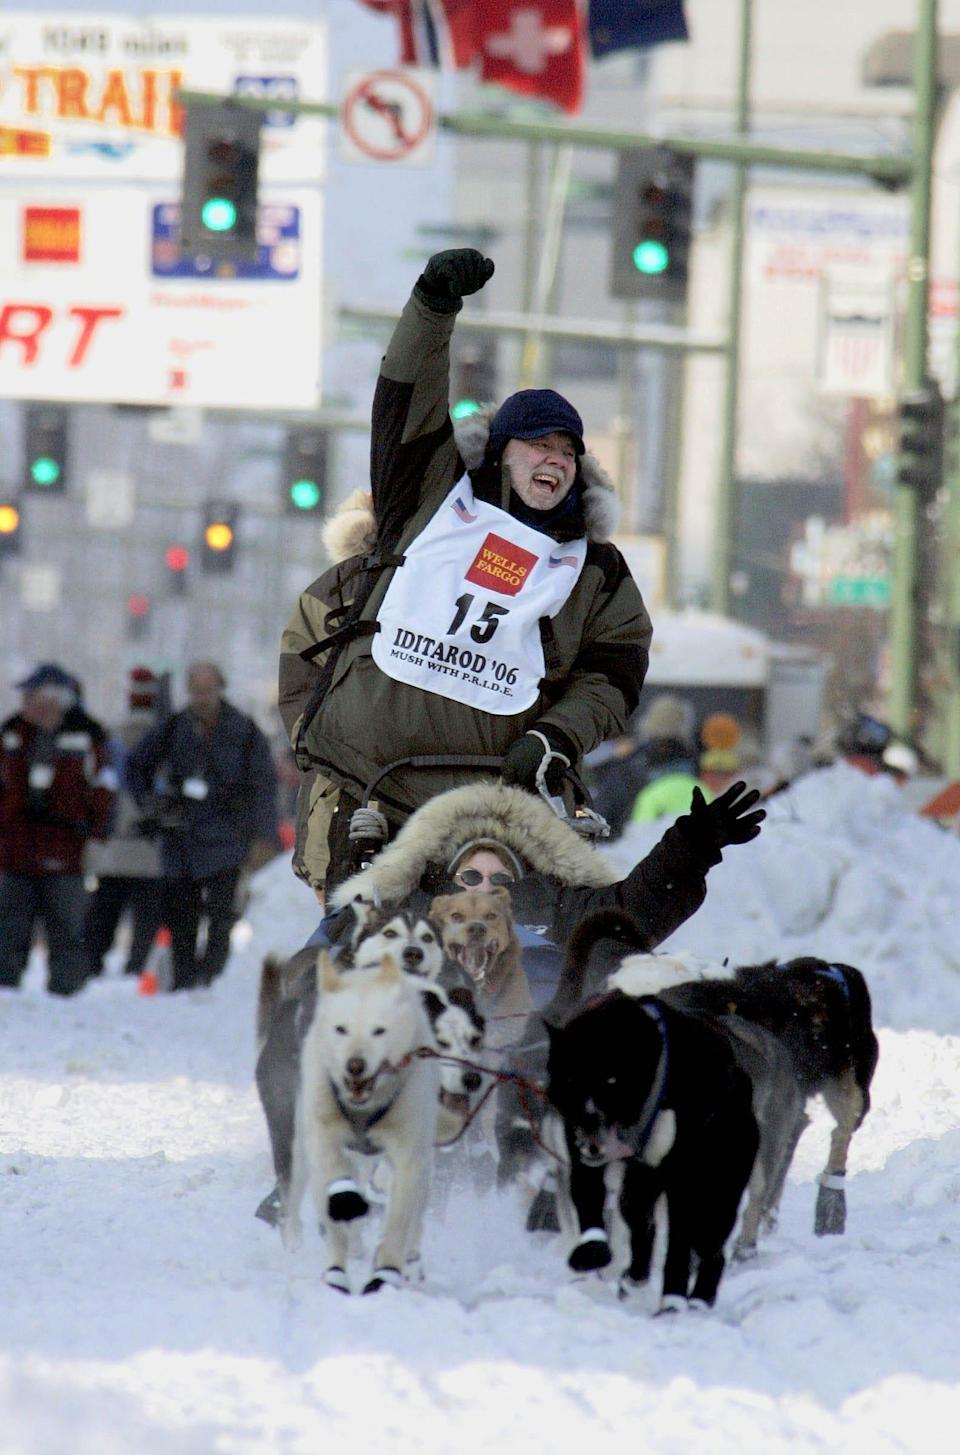 """Author Gary Paulsen, from Tularosa, N.M., cheers he drives his dog team down Fourth Avenue with Carole Markell, from Temple City, Calf., in the sled, during the ceremonial start of the Iditarod Trail Sled Dog Race Saturday, March 4, 2006, in Anchorage, Alaska. Among the many books Paulsen wrote are """"Winterdance: The Fine Madness of Running the Iditarod"""" and """"My Life in Dog Years."""""""